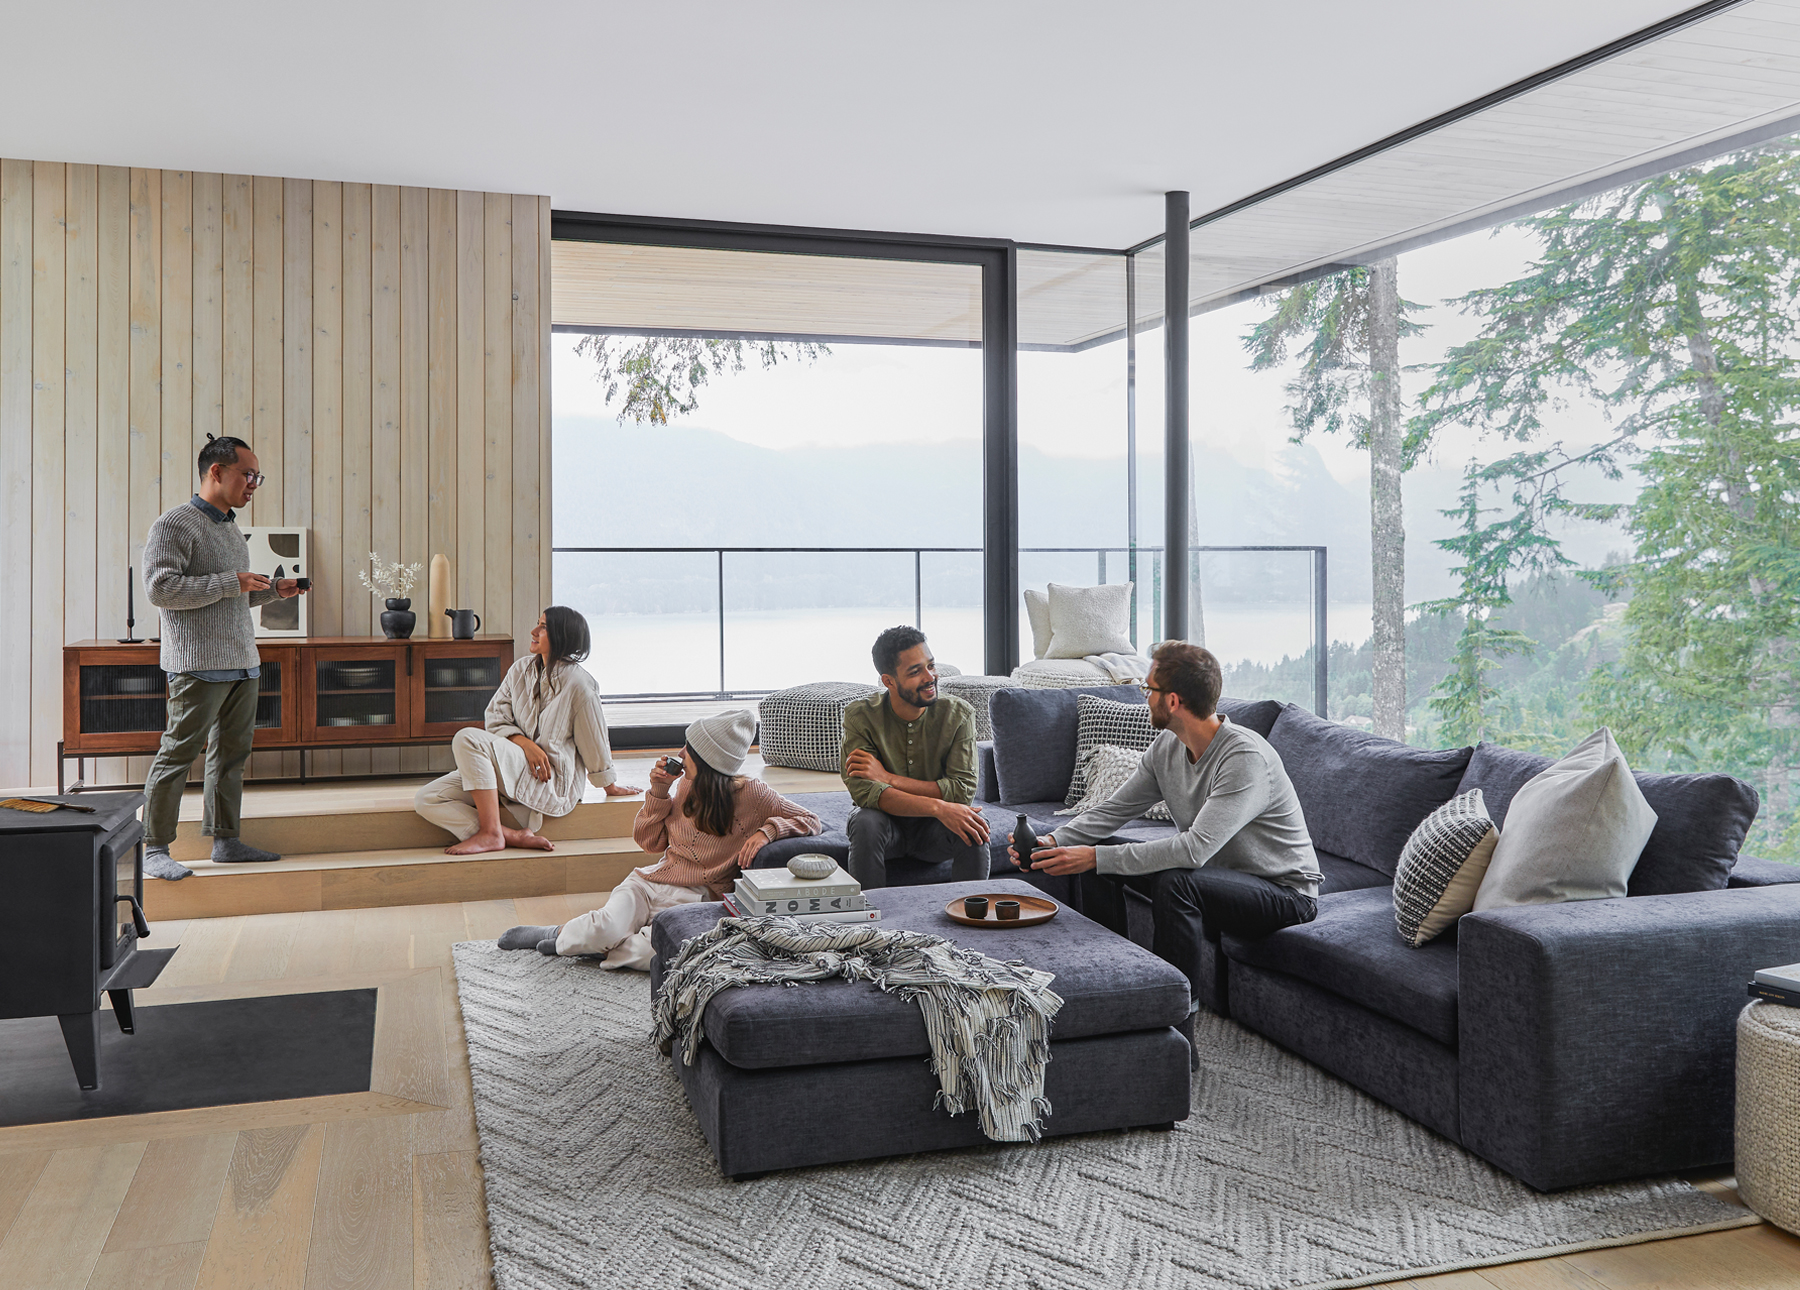 Friends gather for a relaxed house party on the Article Gaba modular sofa